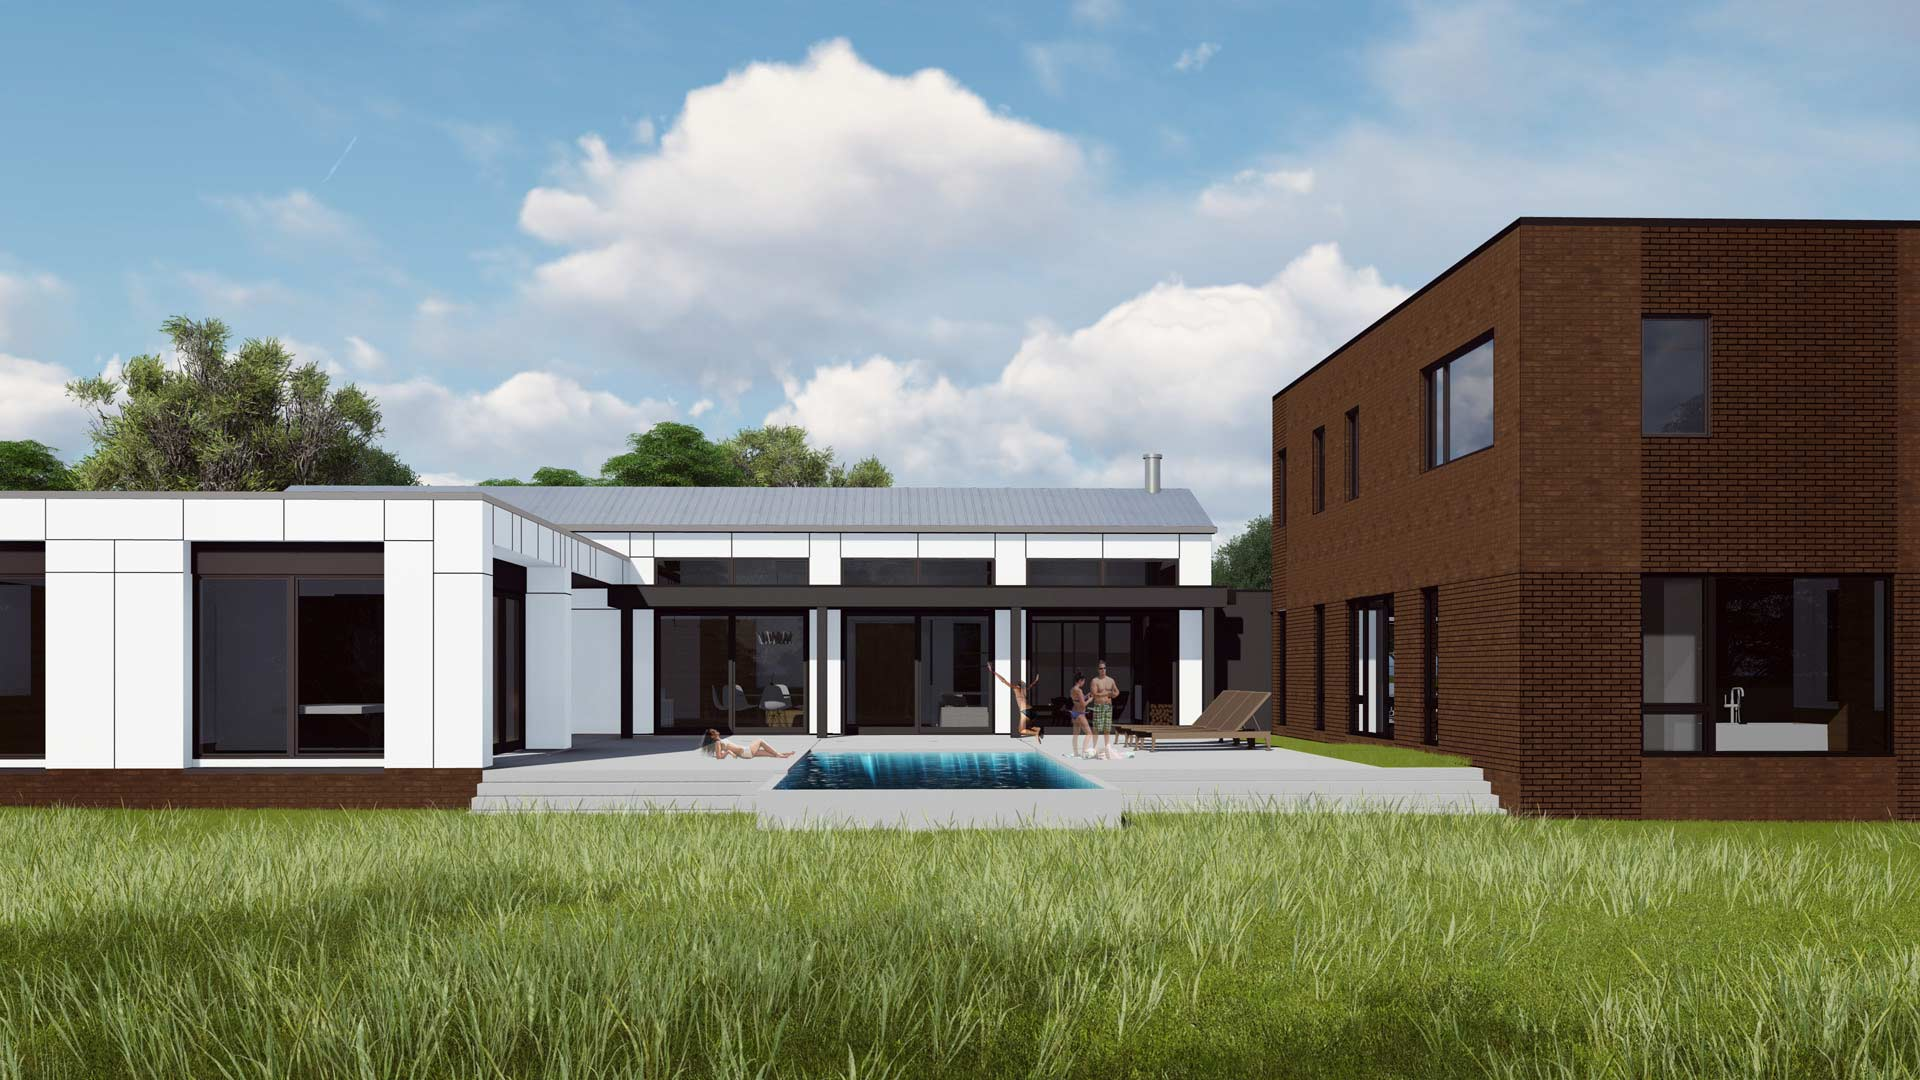 New Modern House Ditch - Courtyard View - HAUS Architecture, Christopher Short, Indianapolis Architect